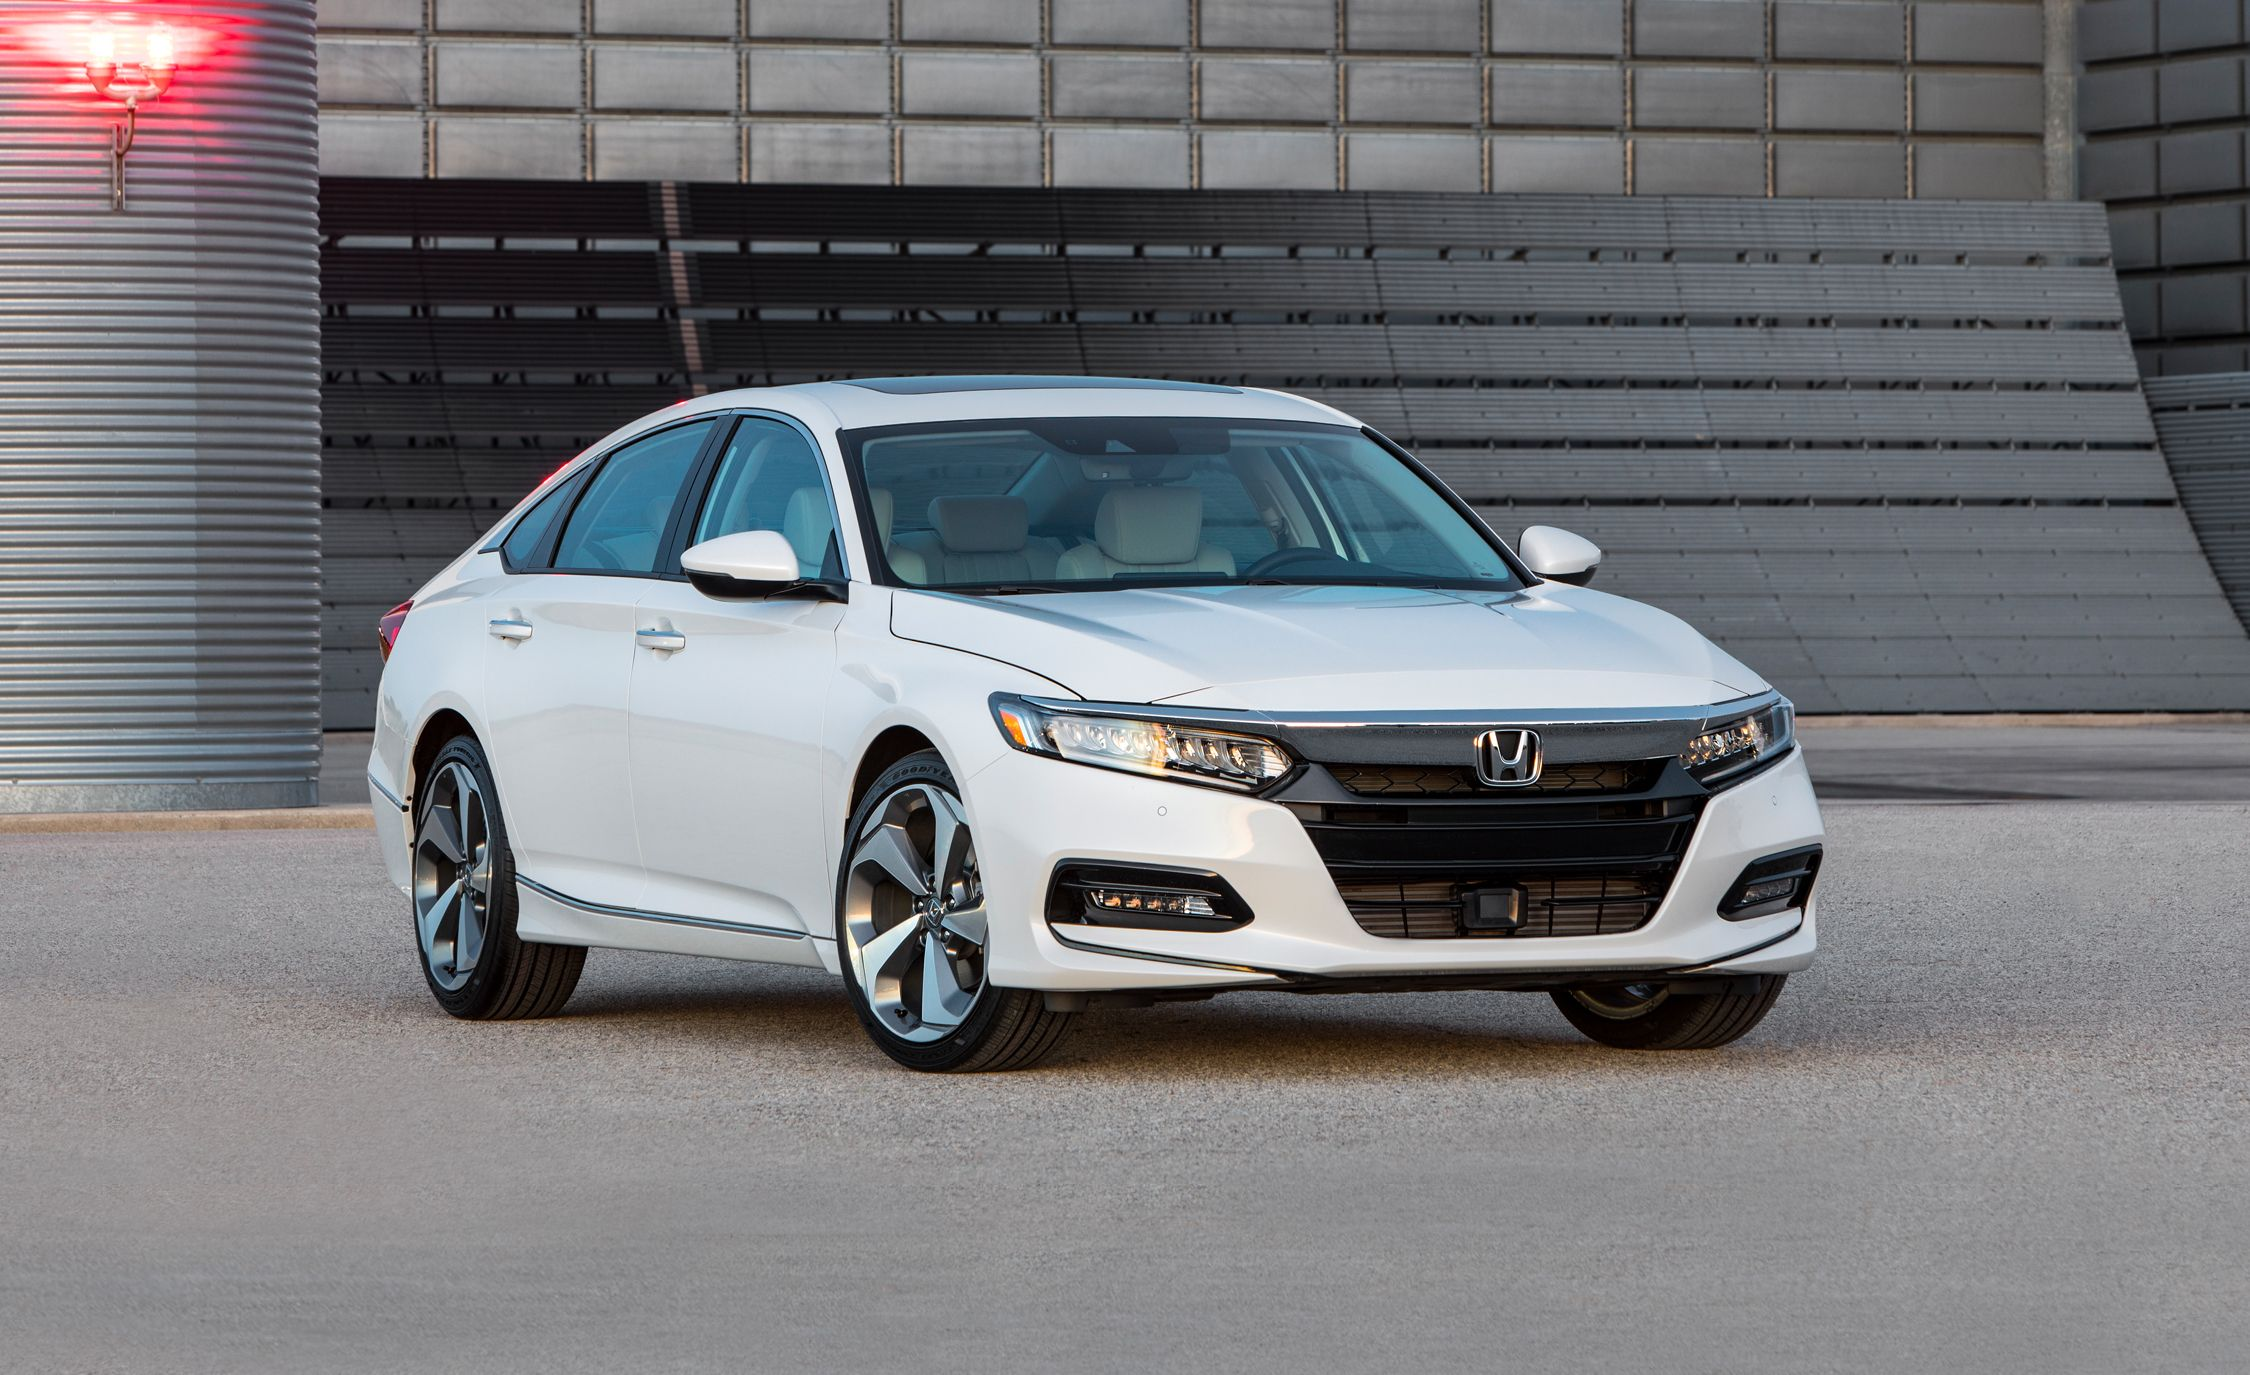 2017 Honda Accord Coupe Exl >> 2018 Honda Accord Officially Revealed! | News | Car and Driver